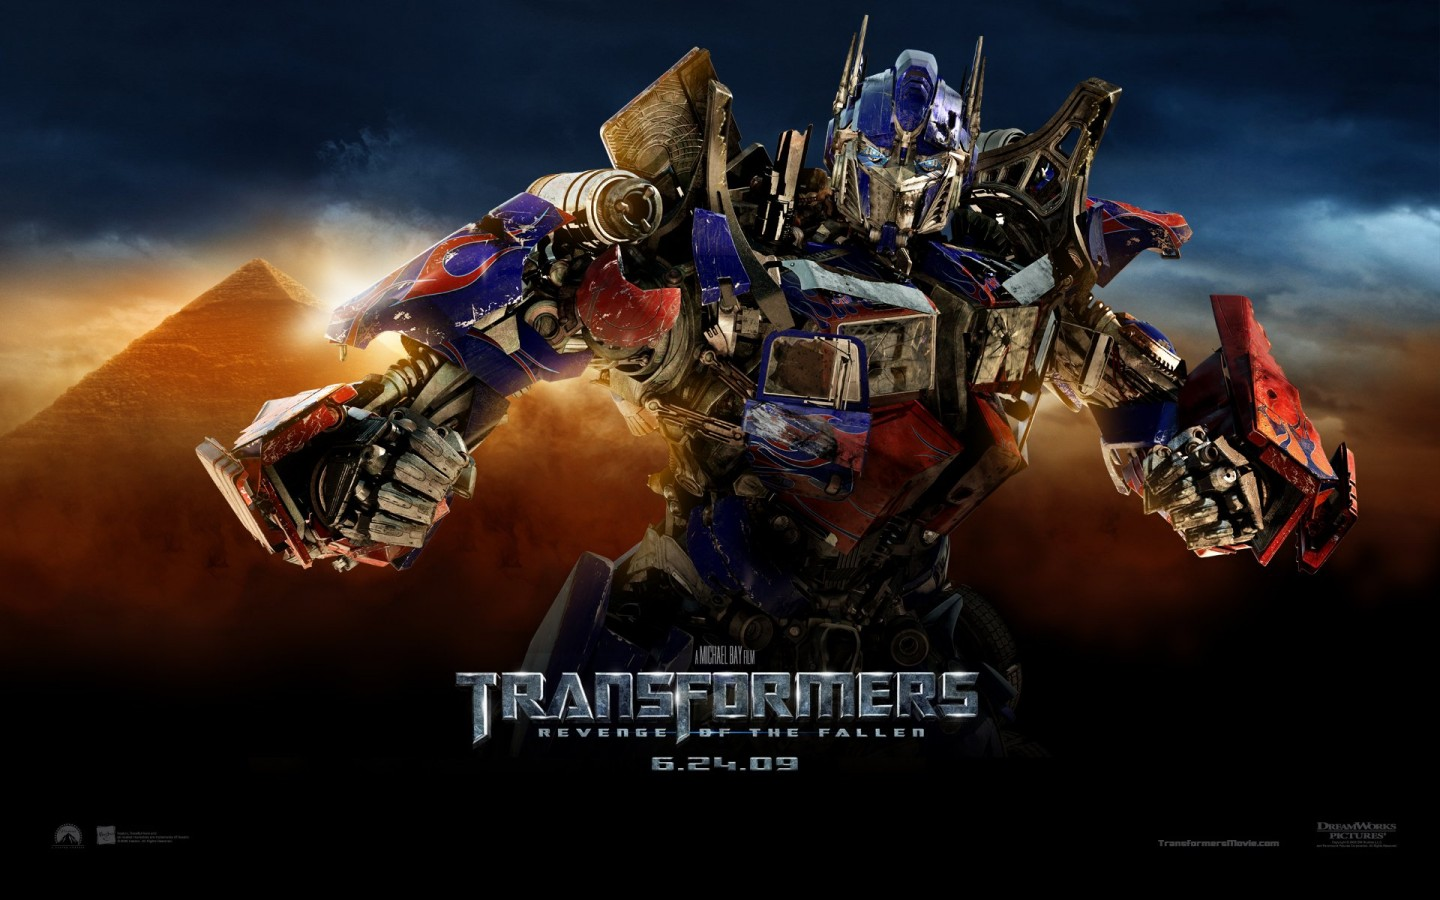 Transformers Classic Desktop Wallpaper 49422